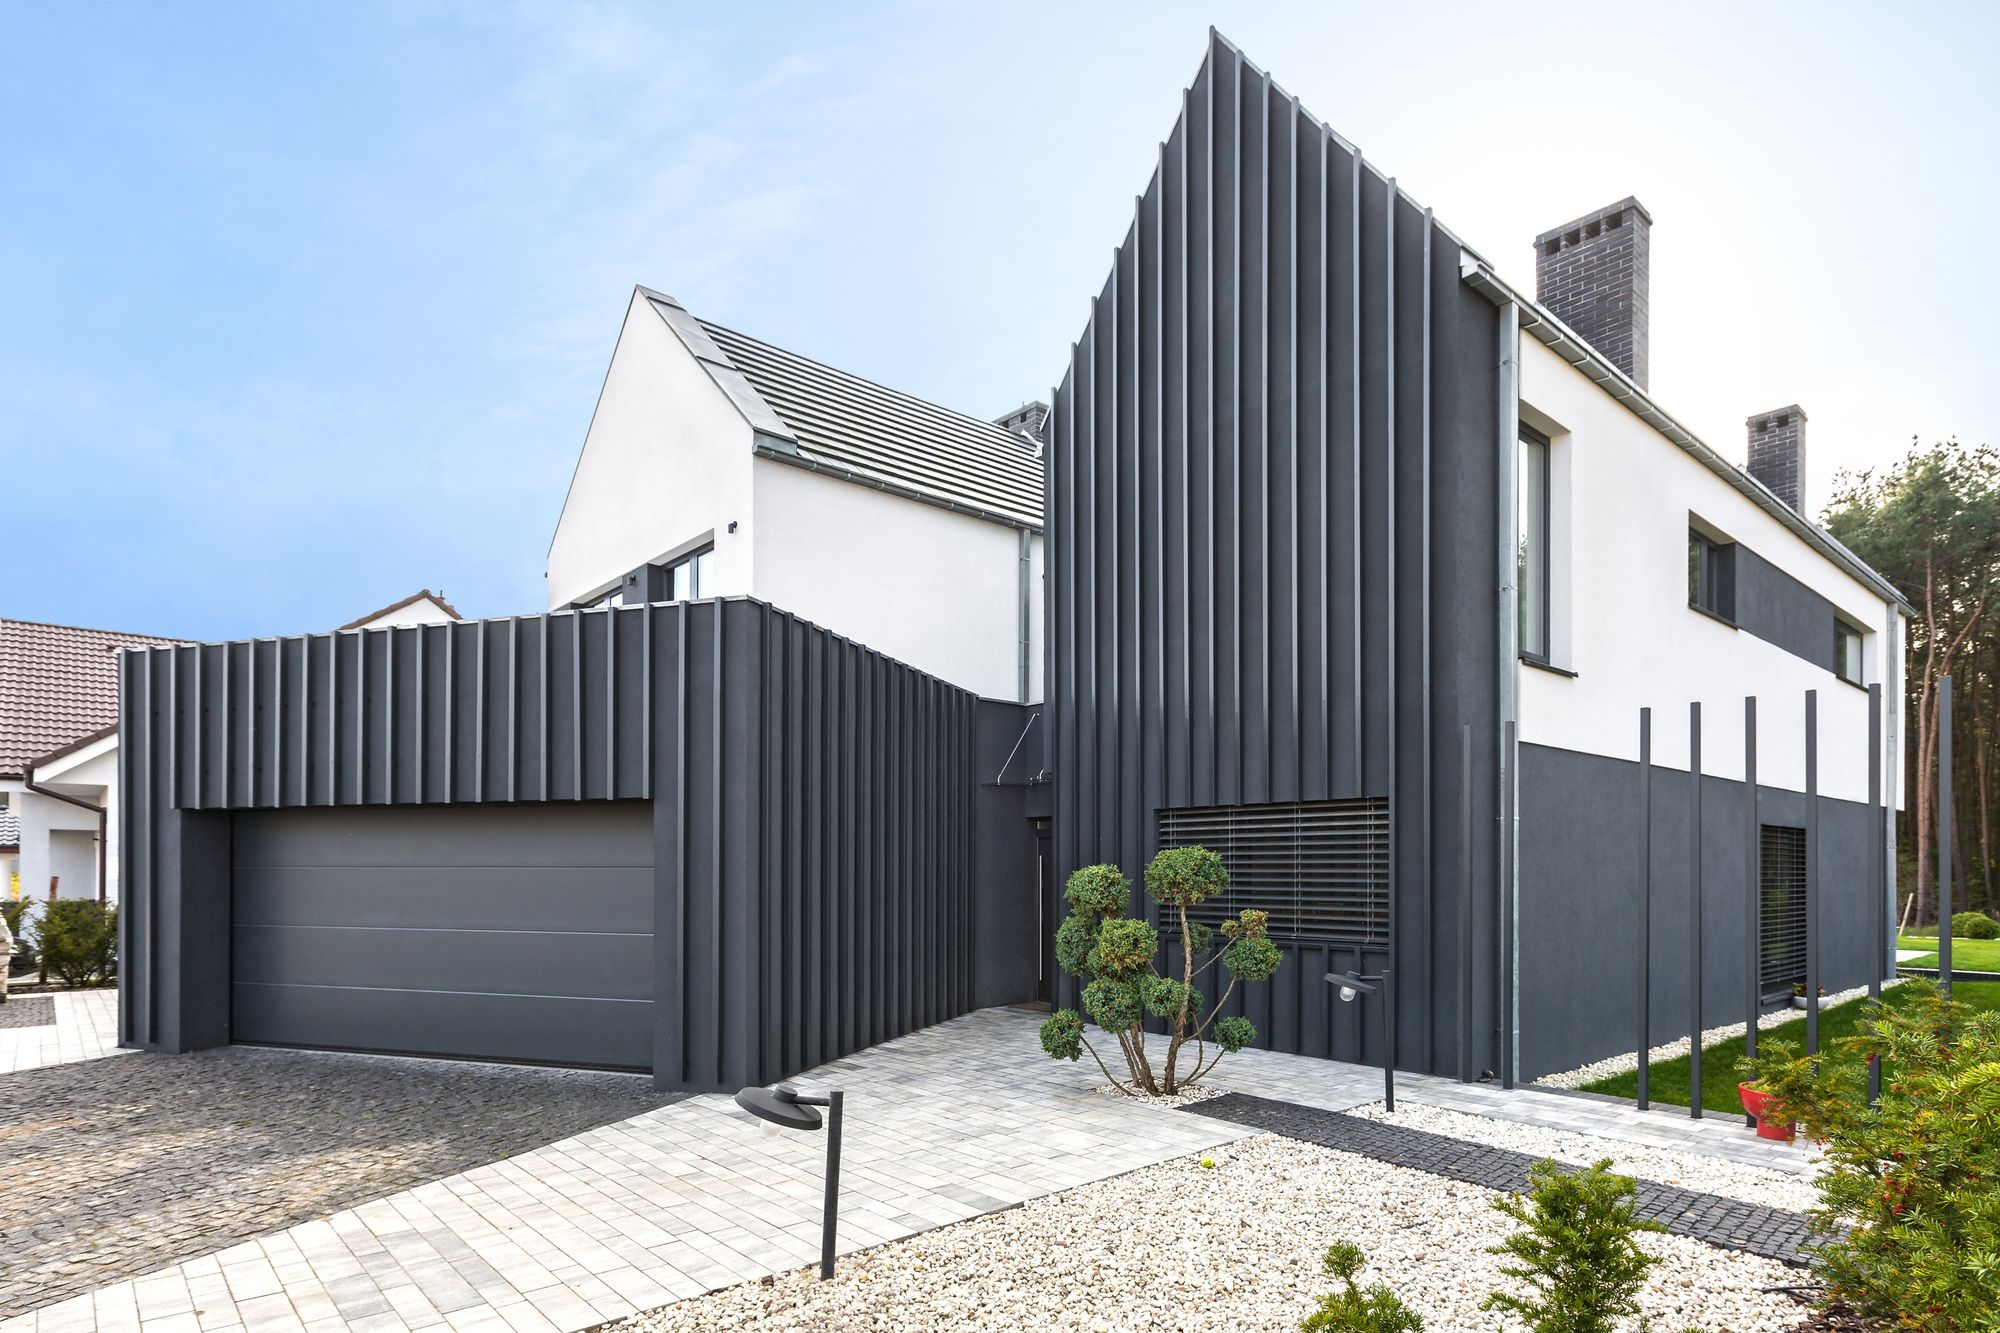 Completed In 2016 In Borowiec Poland Images By Marcin Ratajczak In Borowiec Near Poznan Once Again A House D Facade House Arch House Dream House Exterior